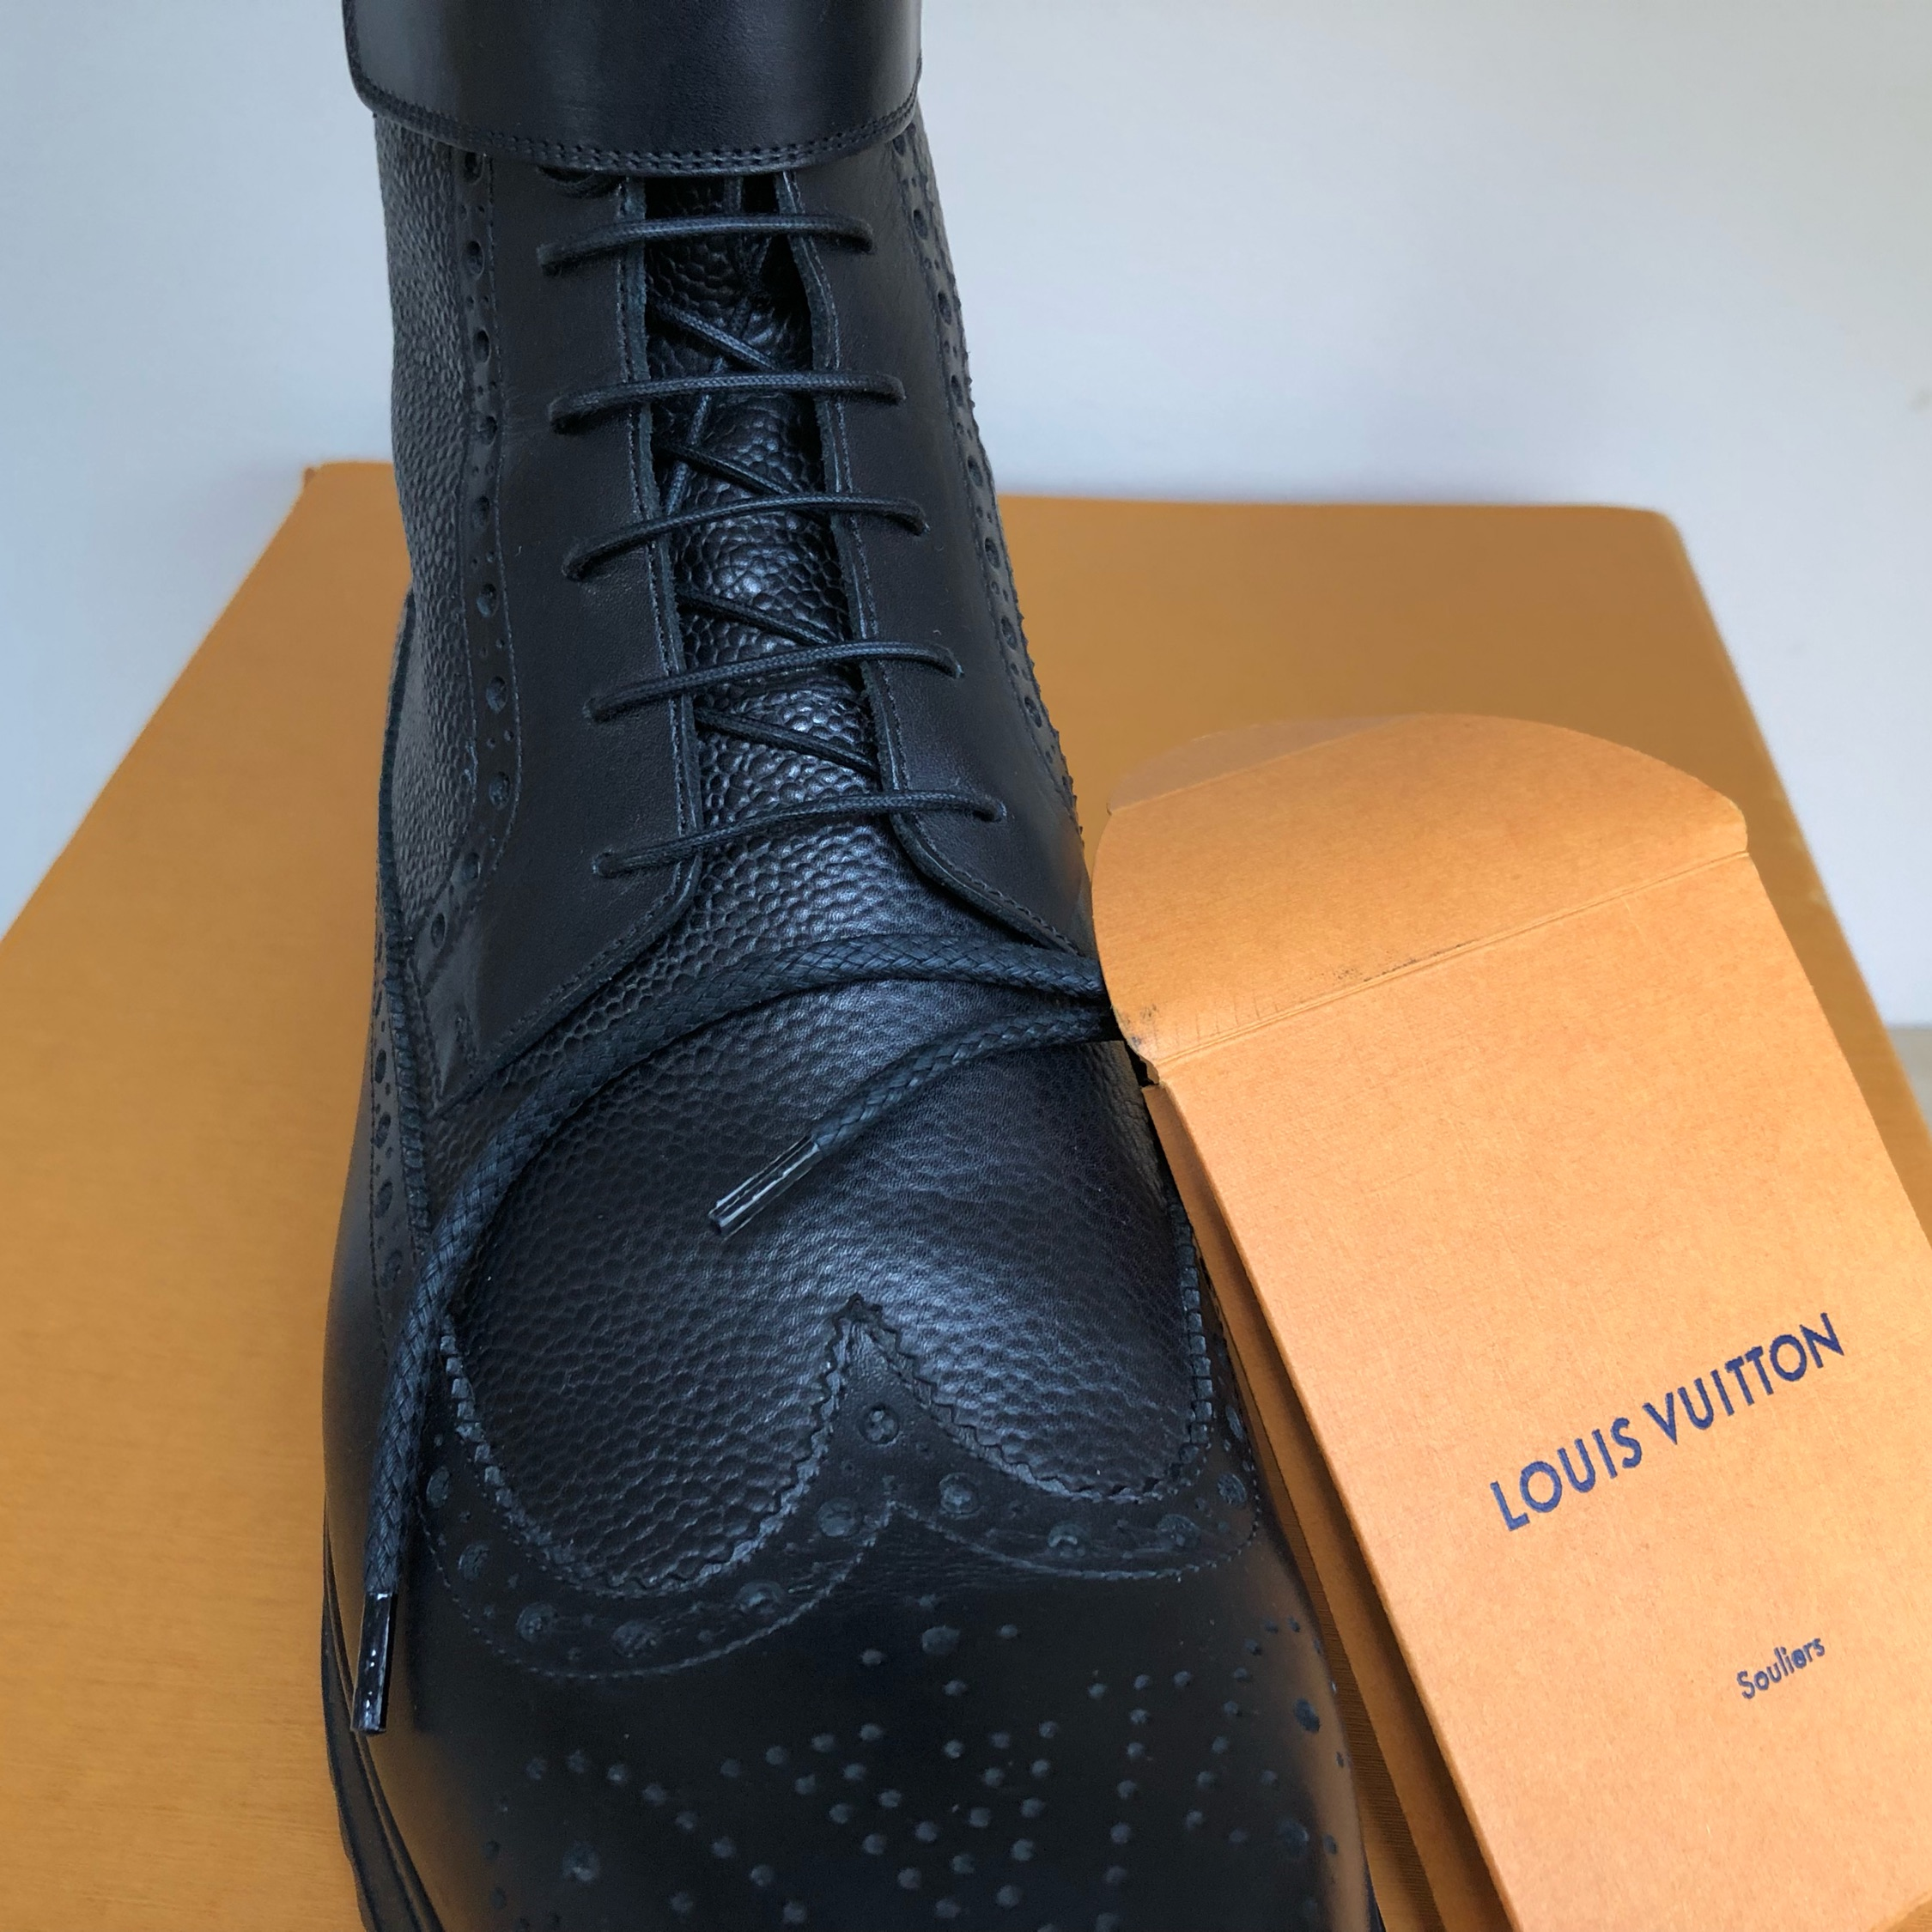 Louis Vuitton Kim Jones Boots